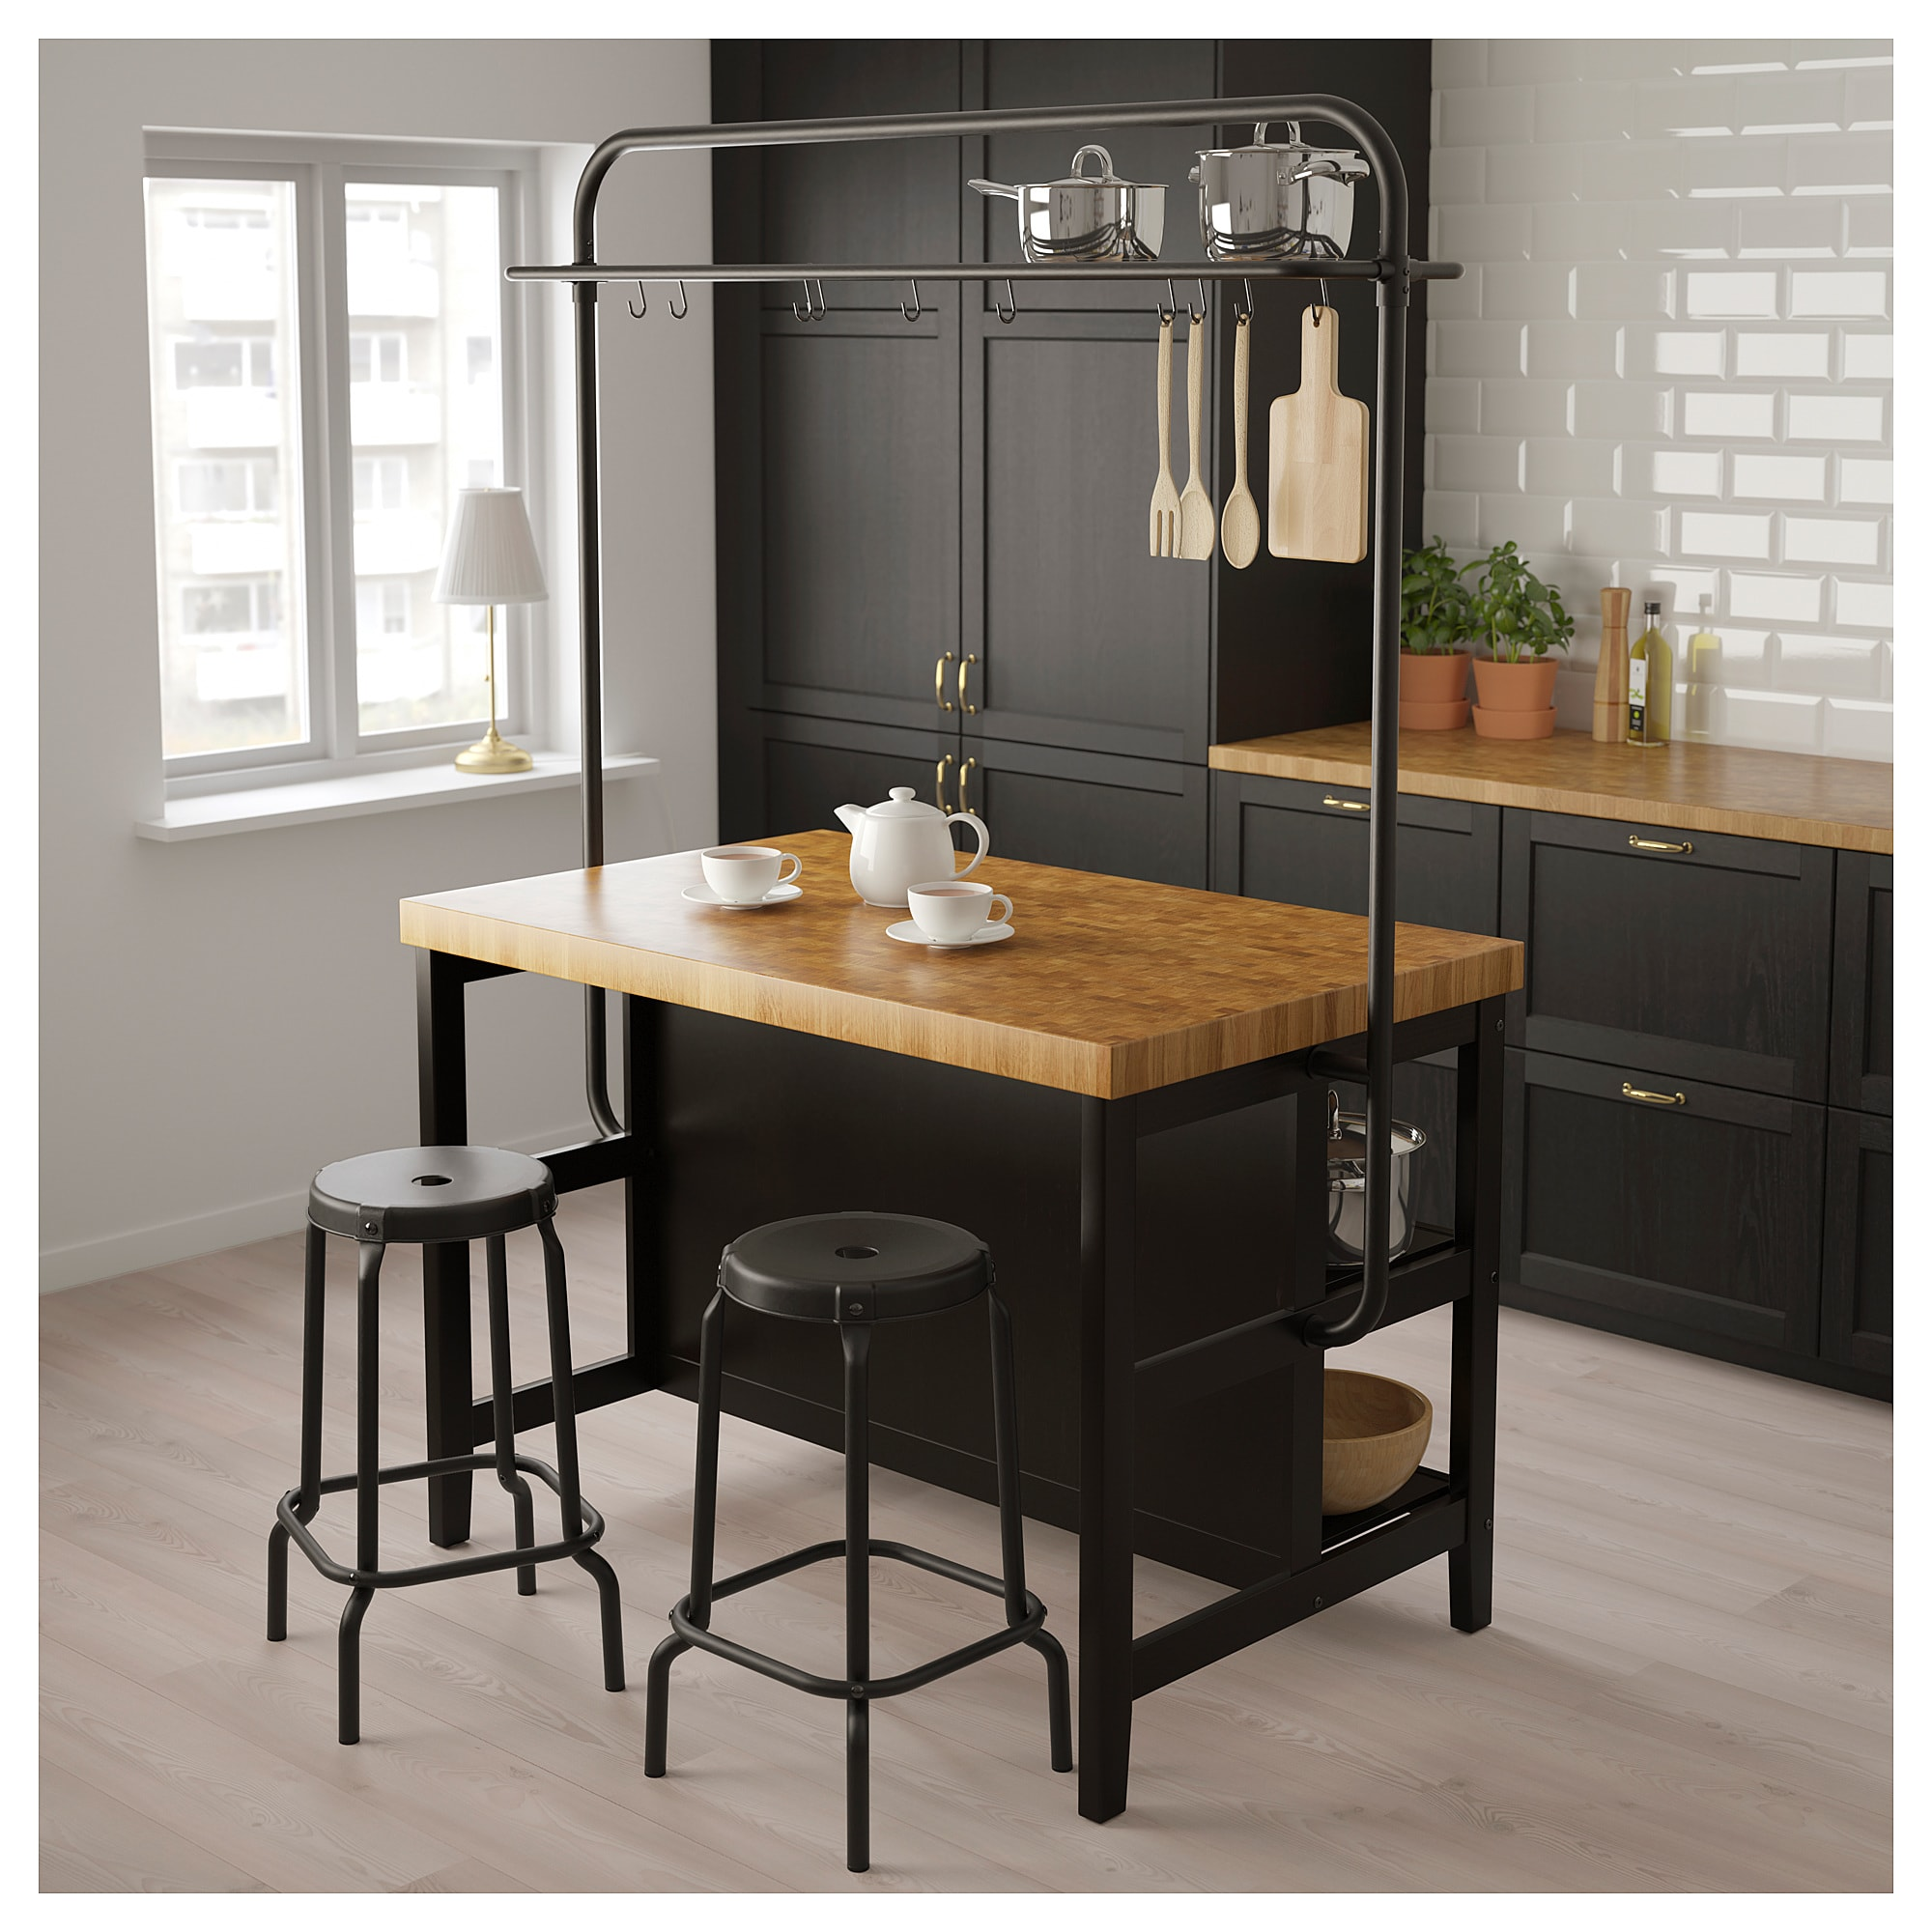 Kitchen Island With Rack, Black, Oak, 49 5/8x31 1/8x76